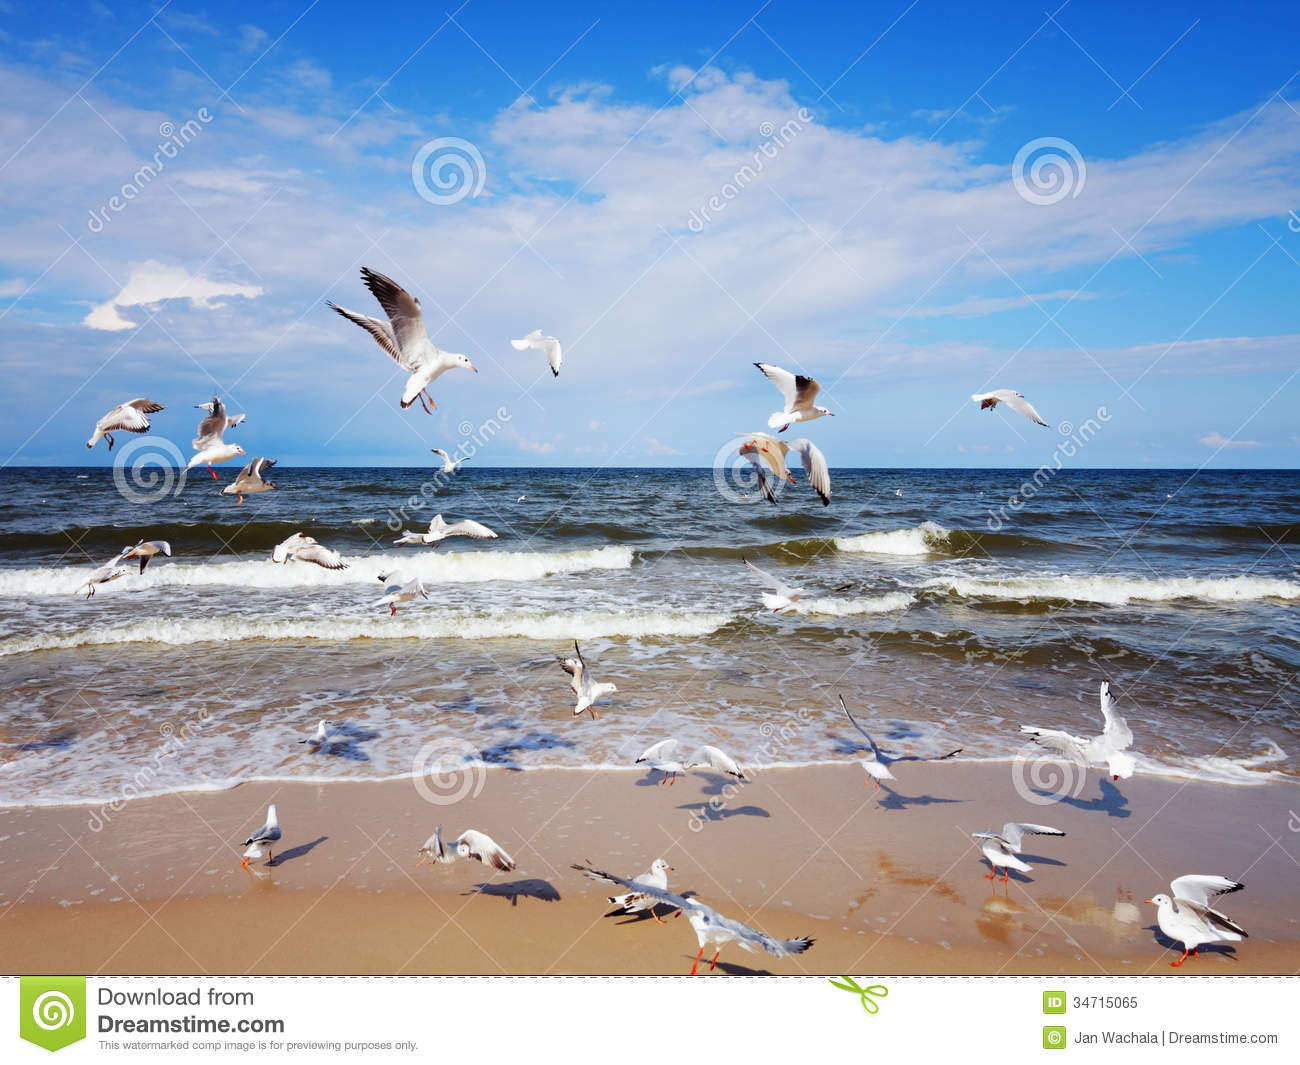 oil painting of ocean waves and seagulls